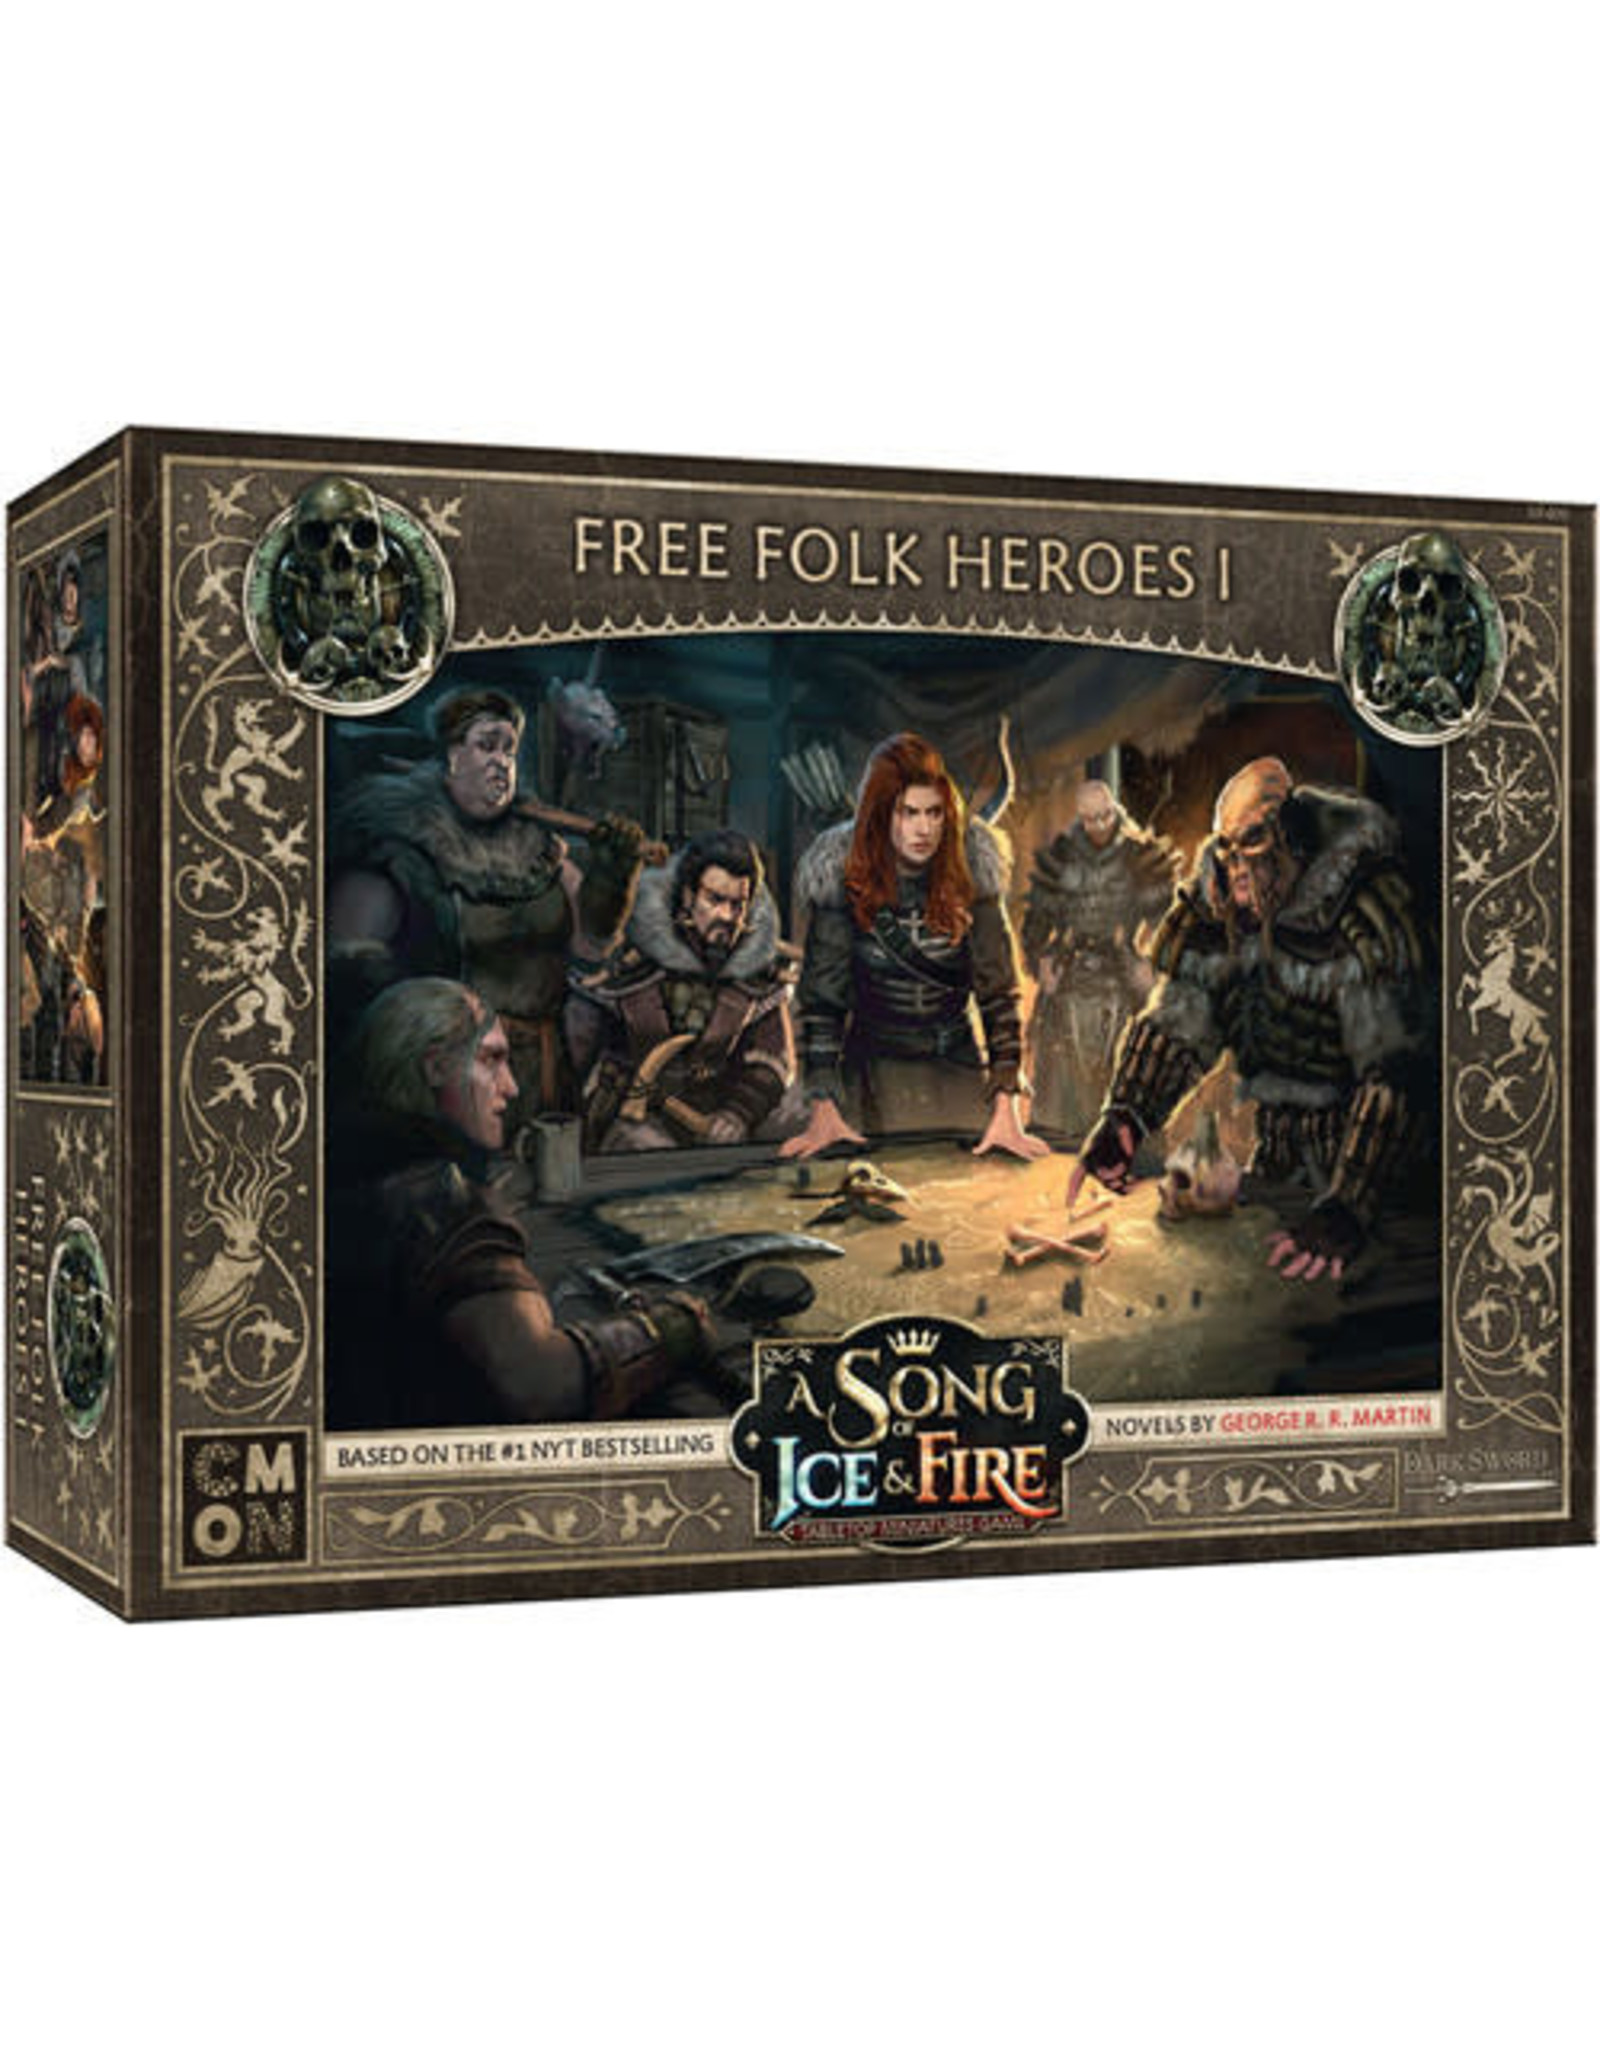 CMON A Song of Ice & Fire: Free Folk Heroes #1